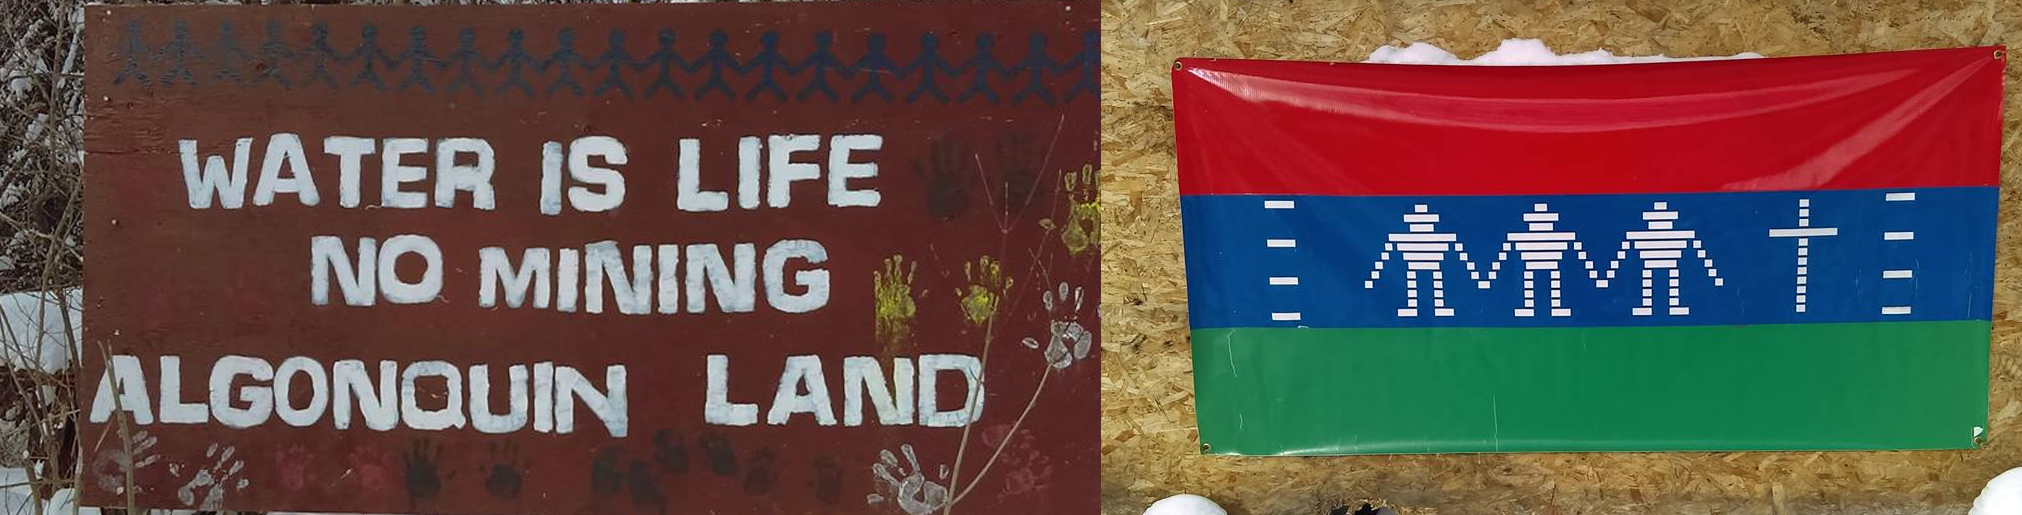 a sign reads Water is Life, No Mining on Algonquin Land